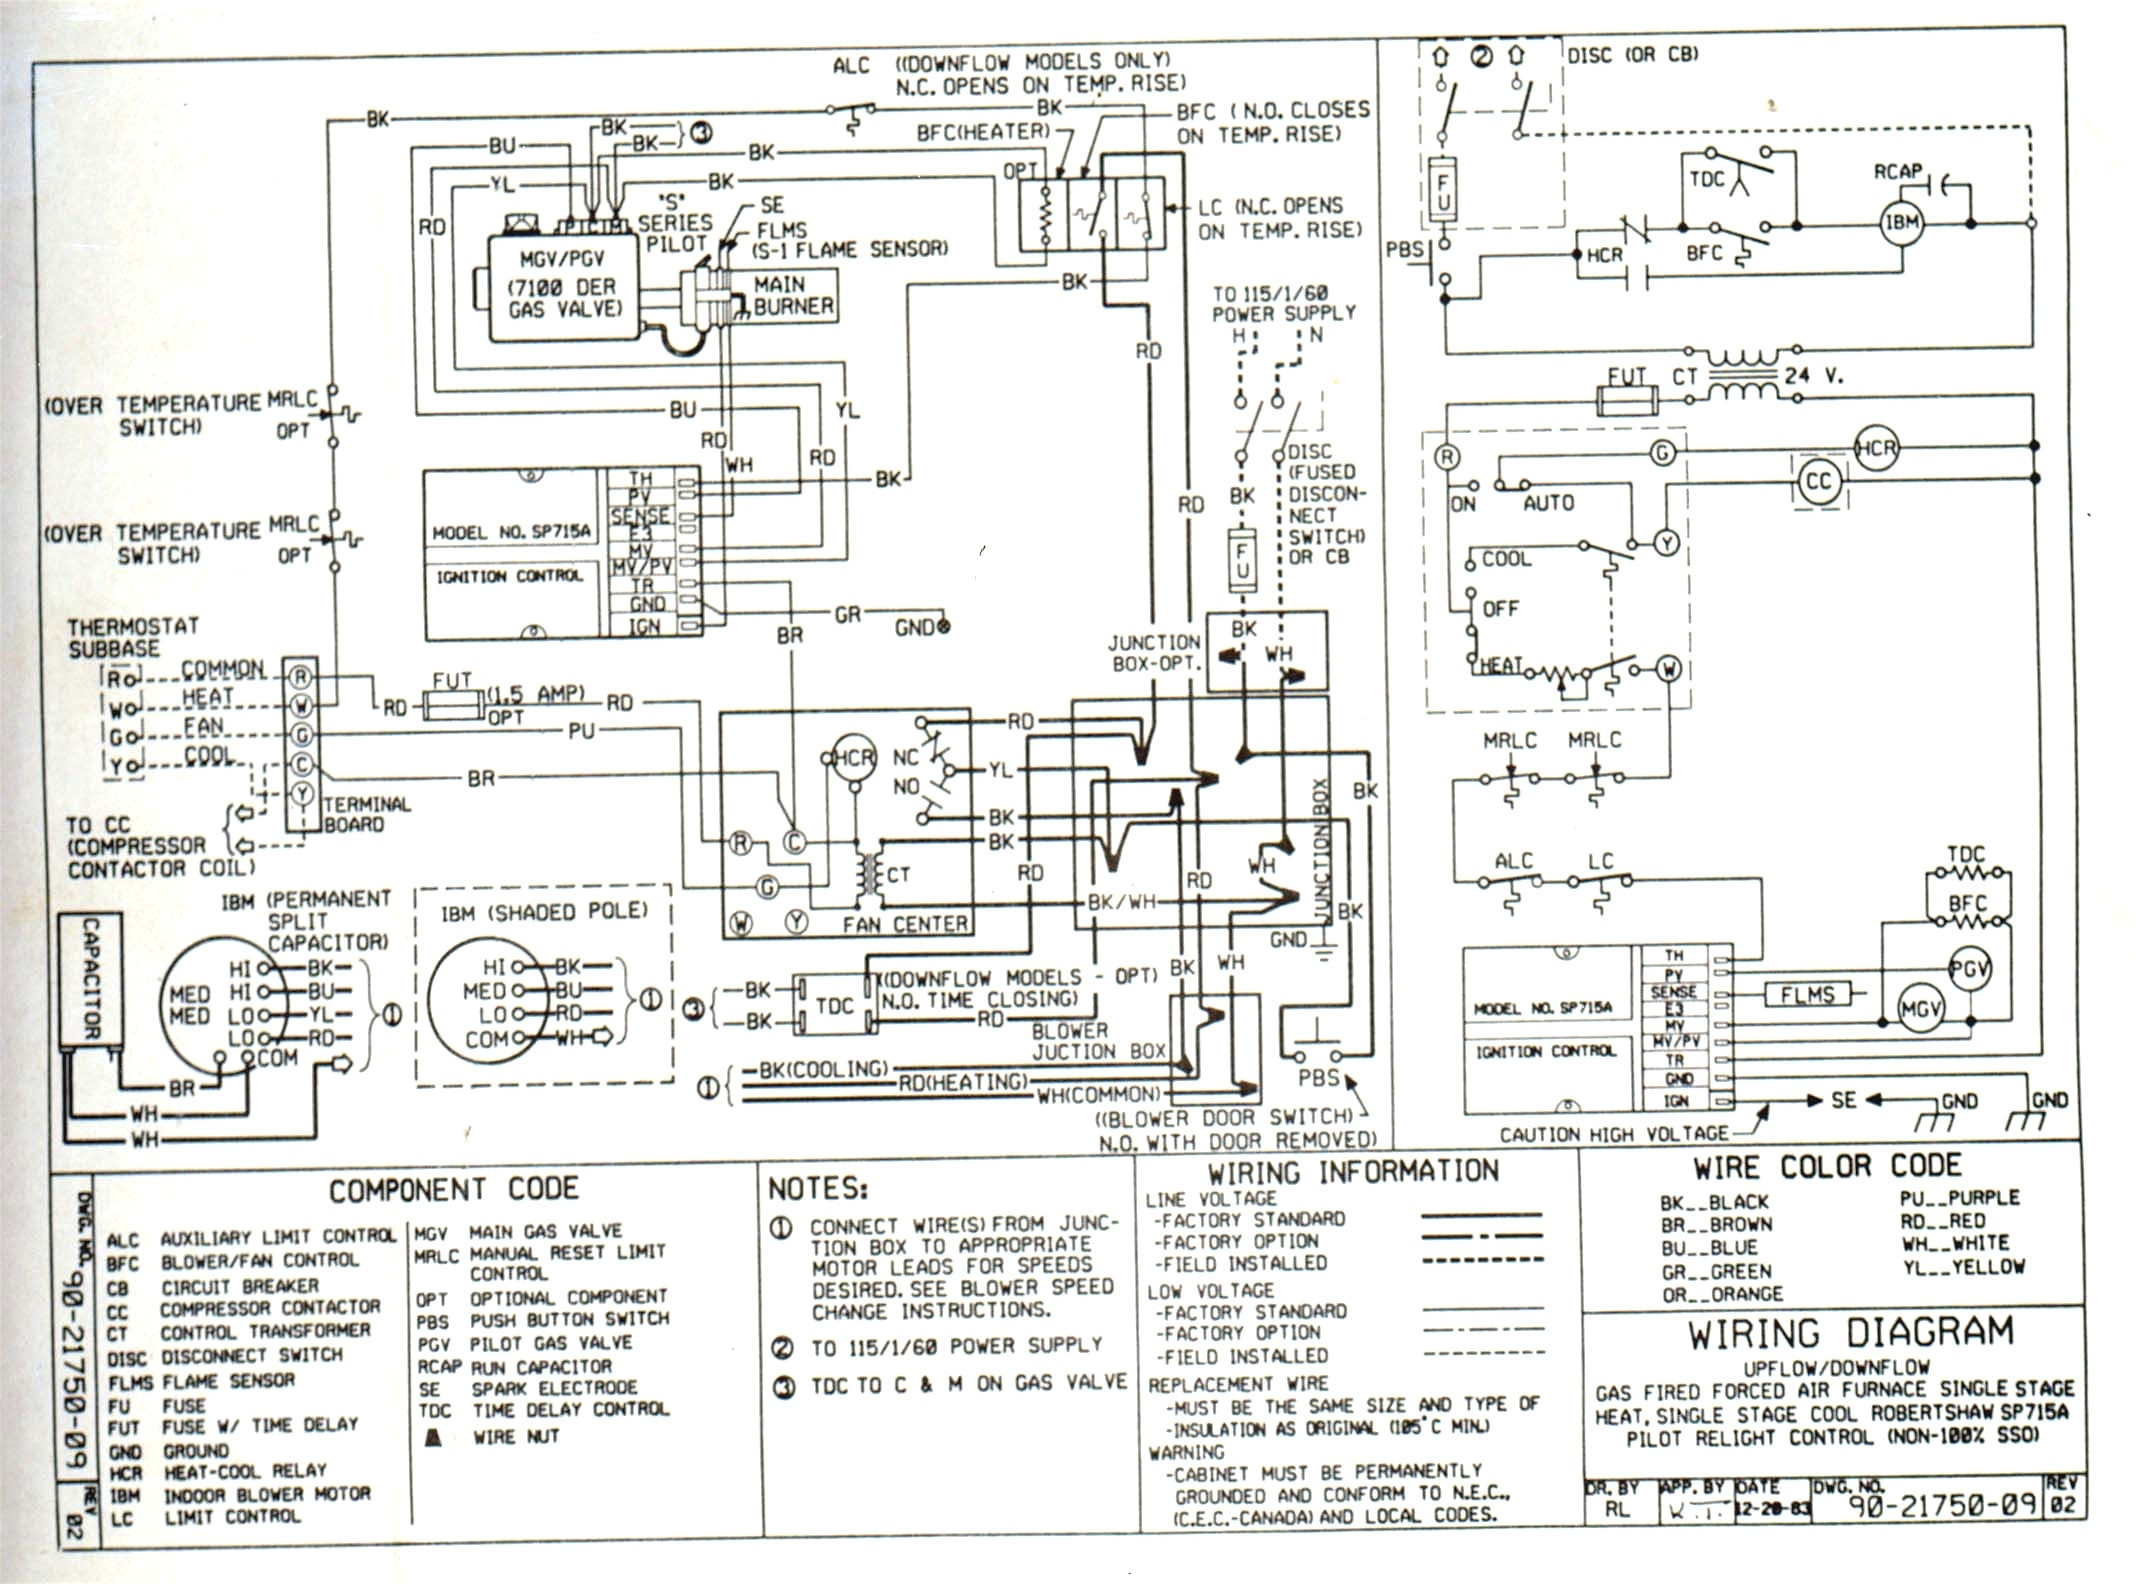 Carrier Heat Pump Thermostat Wiring | Wiring Diagram Database on haier appliance wiring diagrams, haier heat pump wiring diagrams, haier refrigerator wiring diagram,